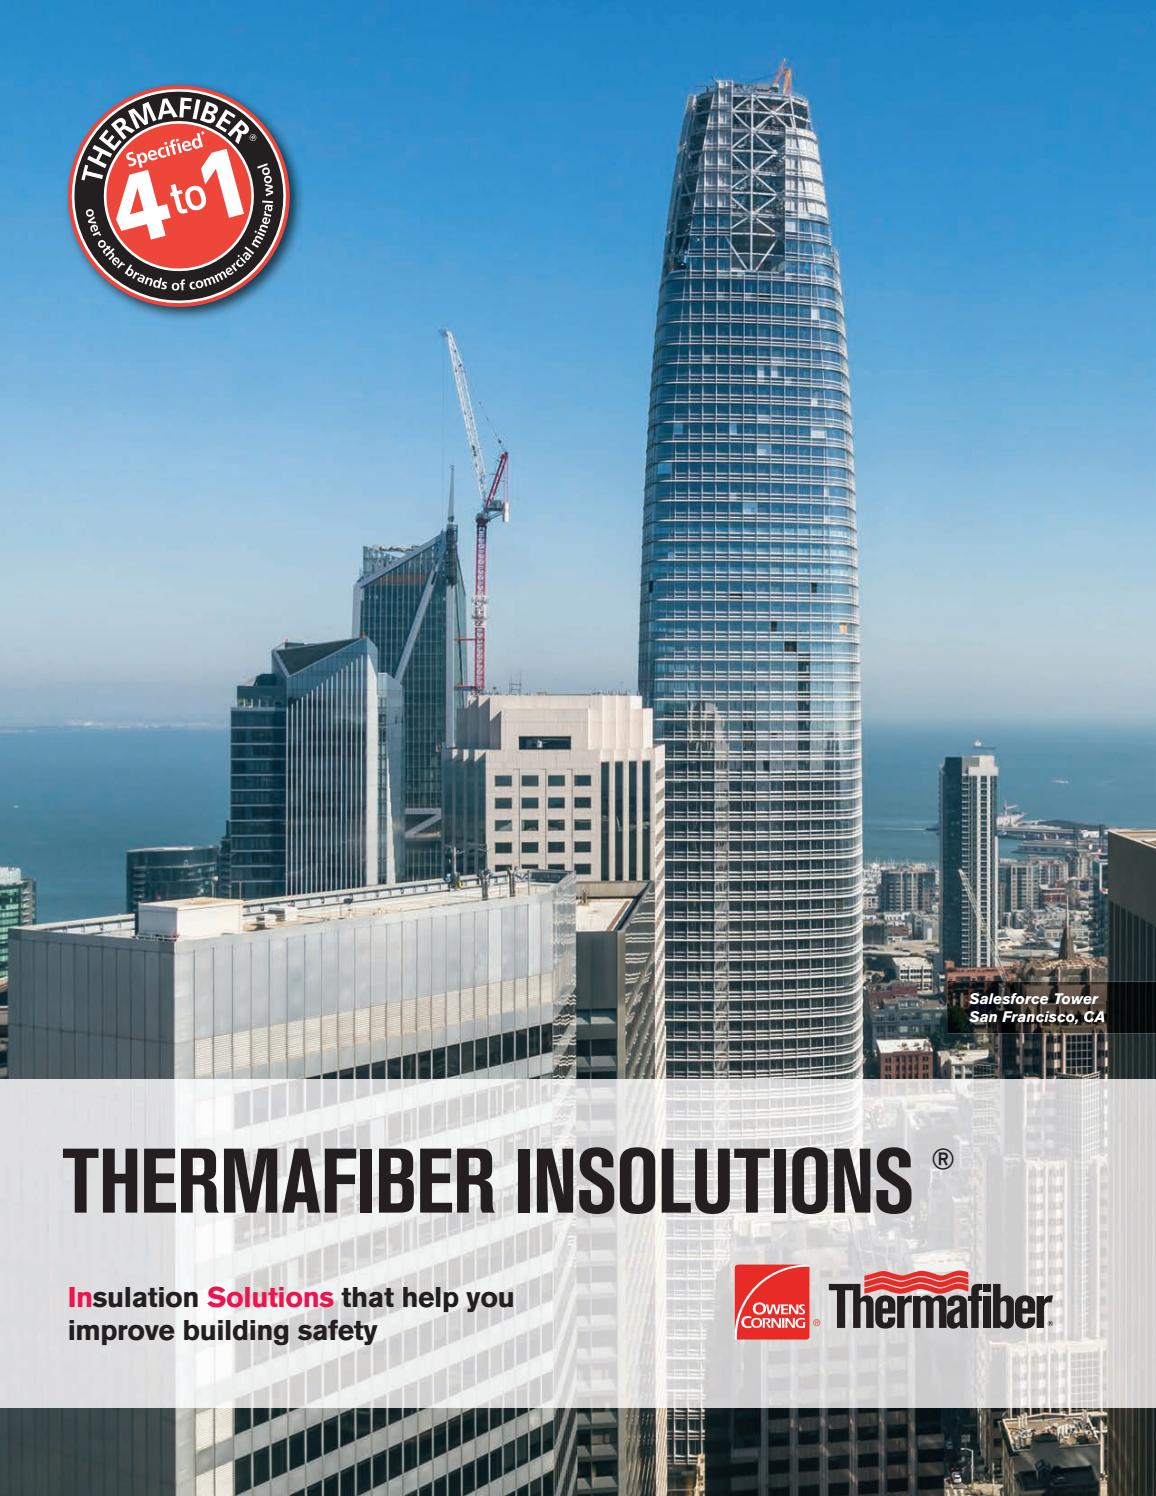 Thermafiber Insolutions Brochure By Thermafiber Issuu